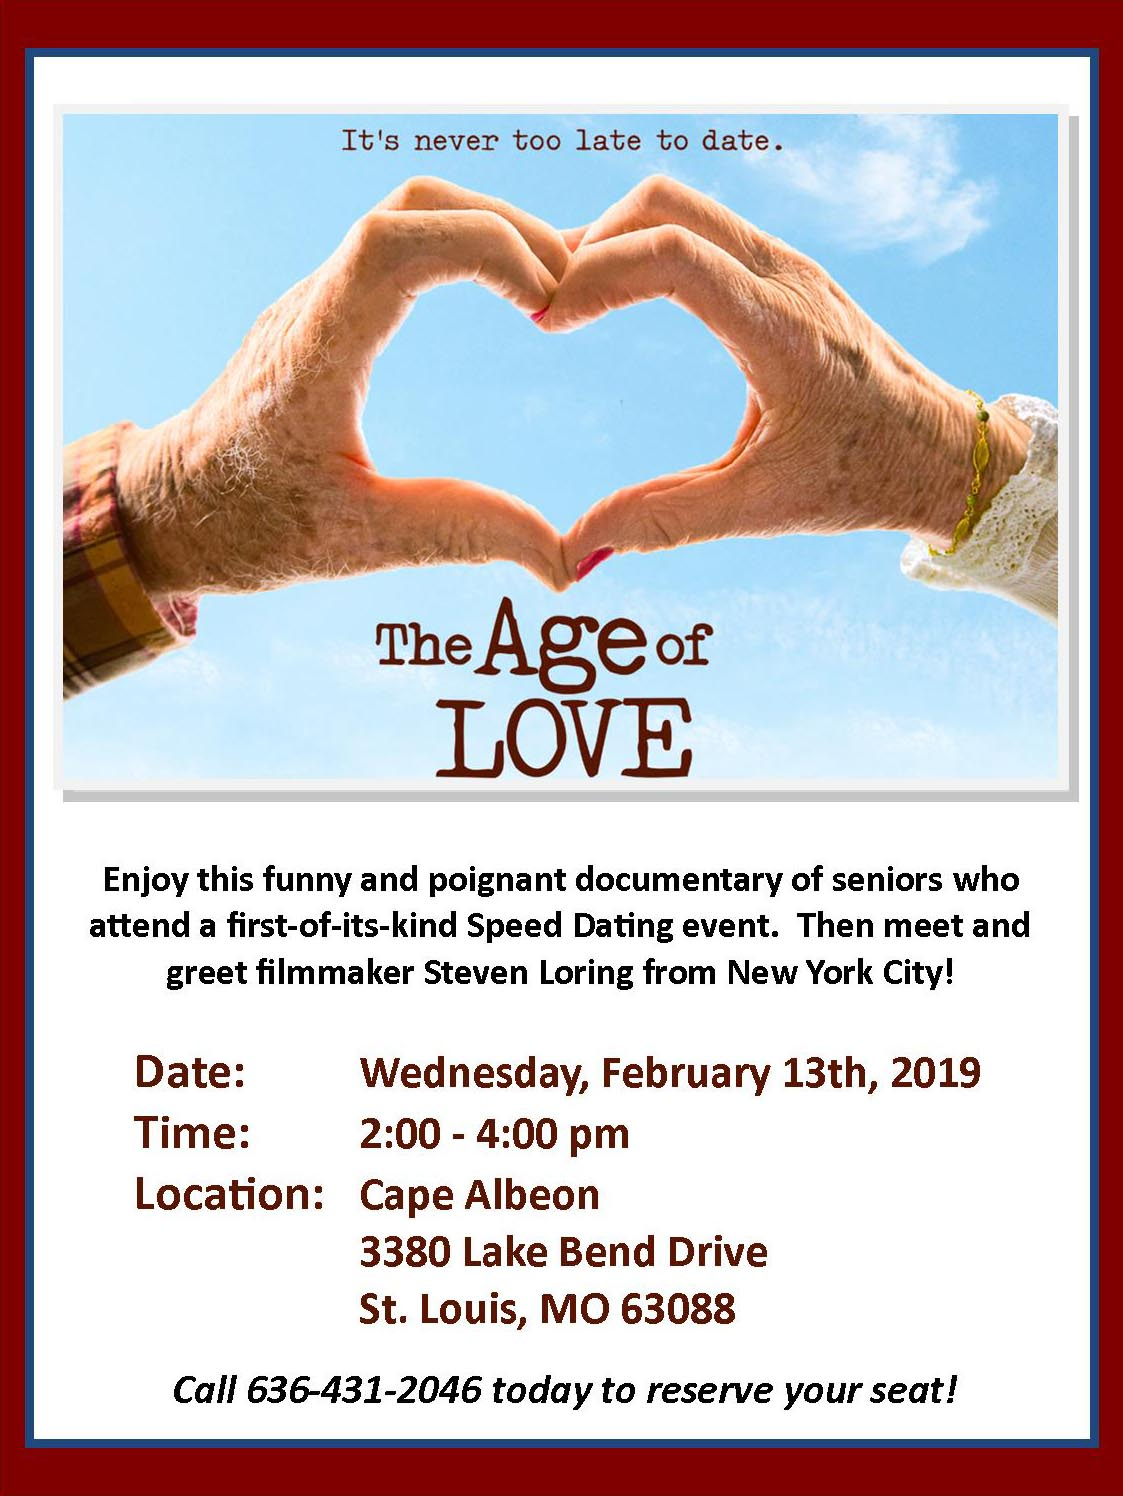 Cape Albeon hosts The Age of Love